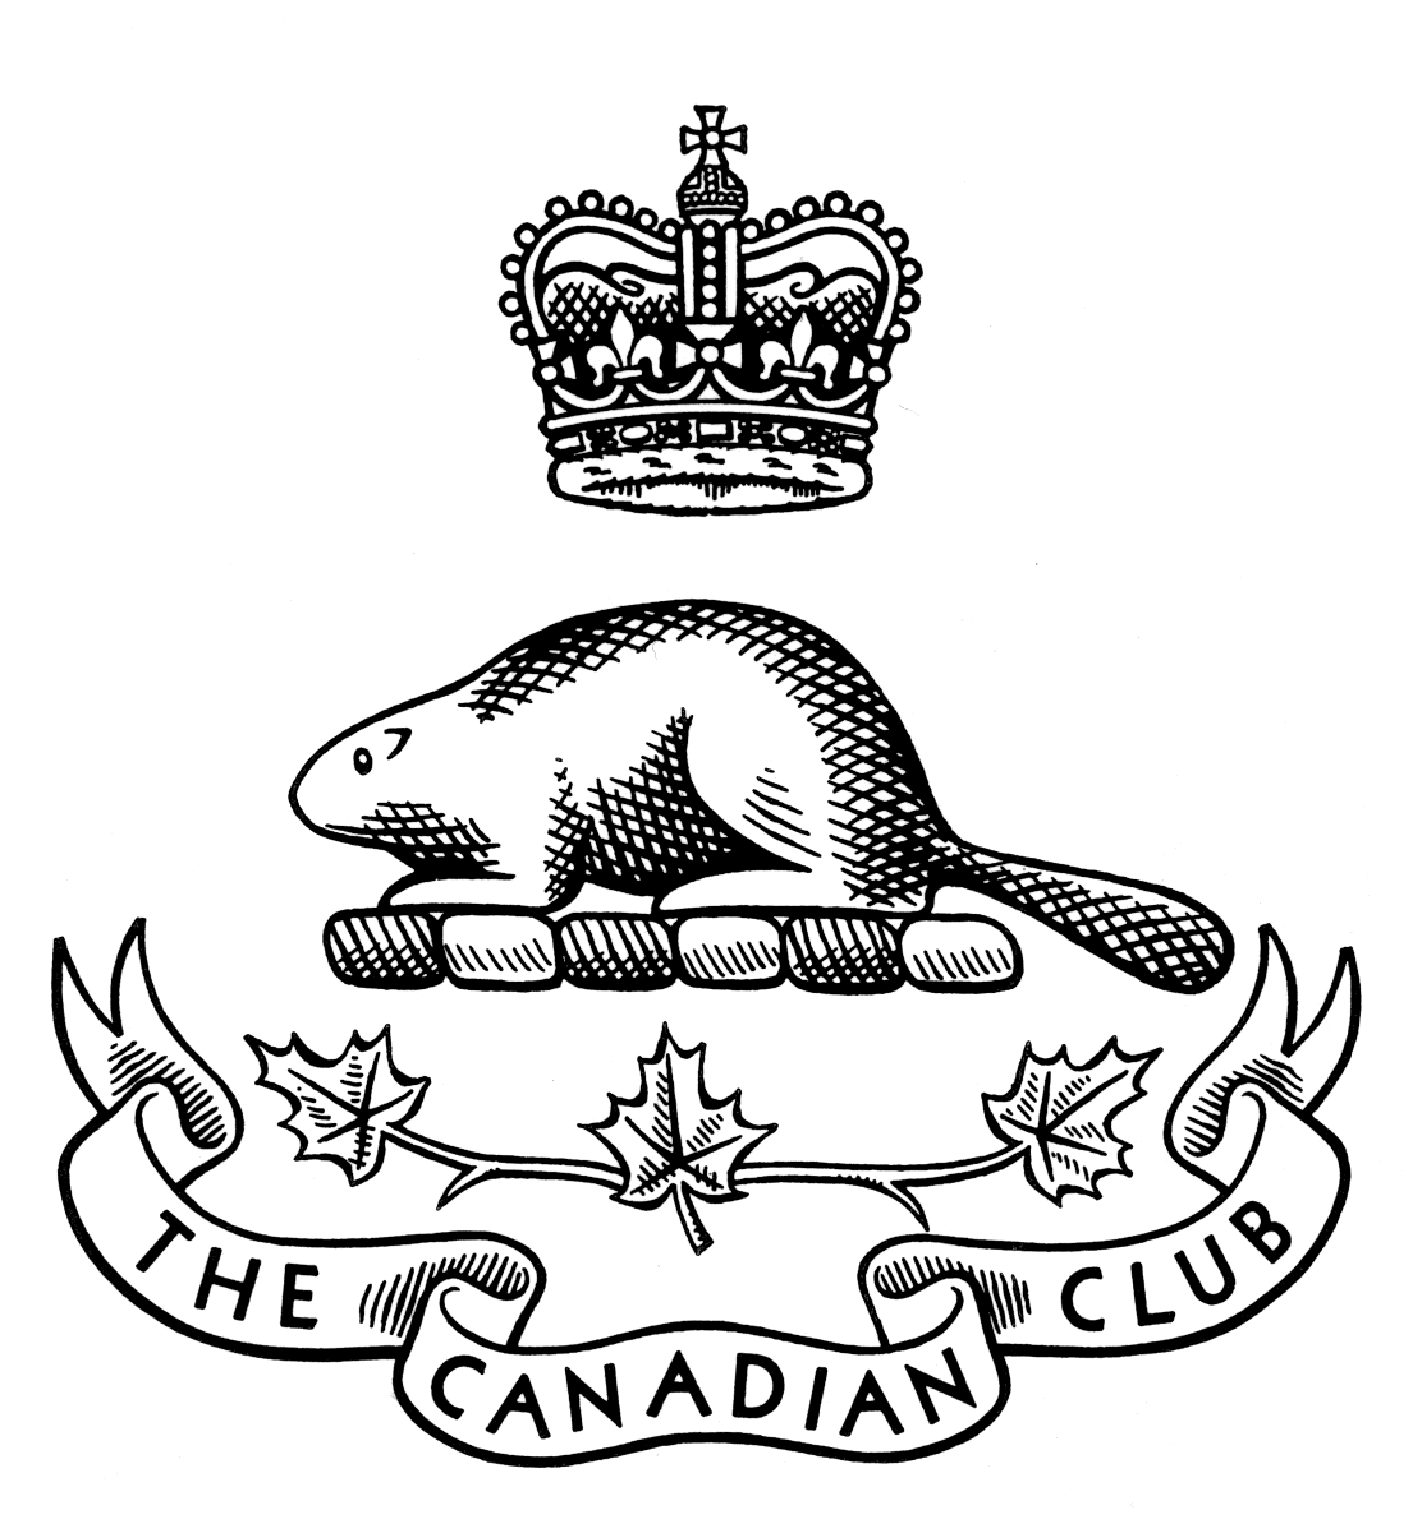 The Canadian Club Logo